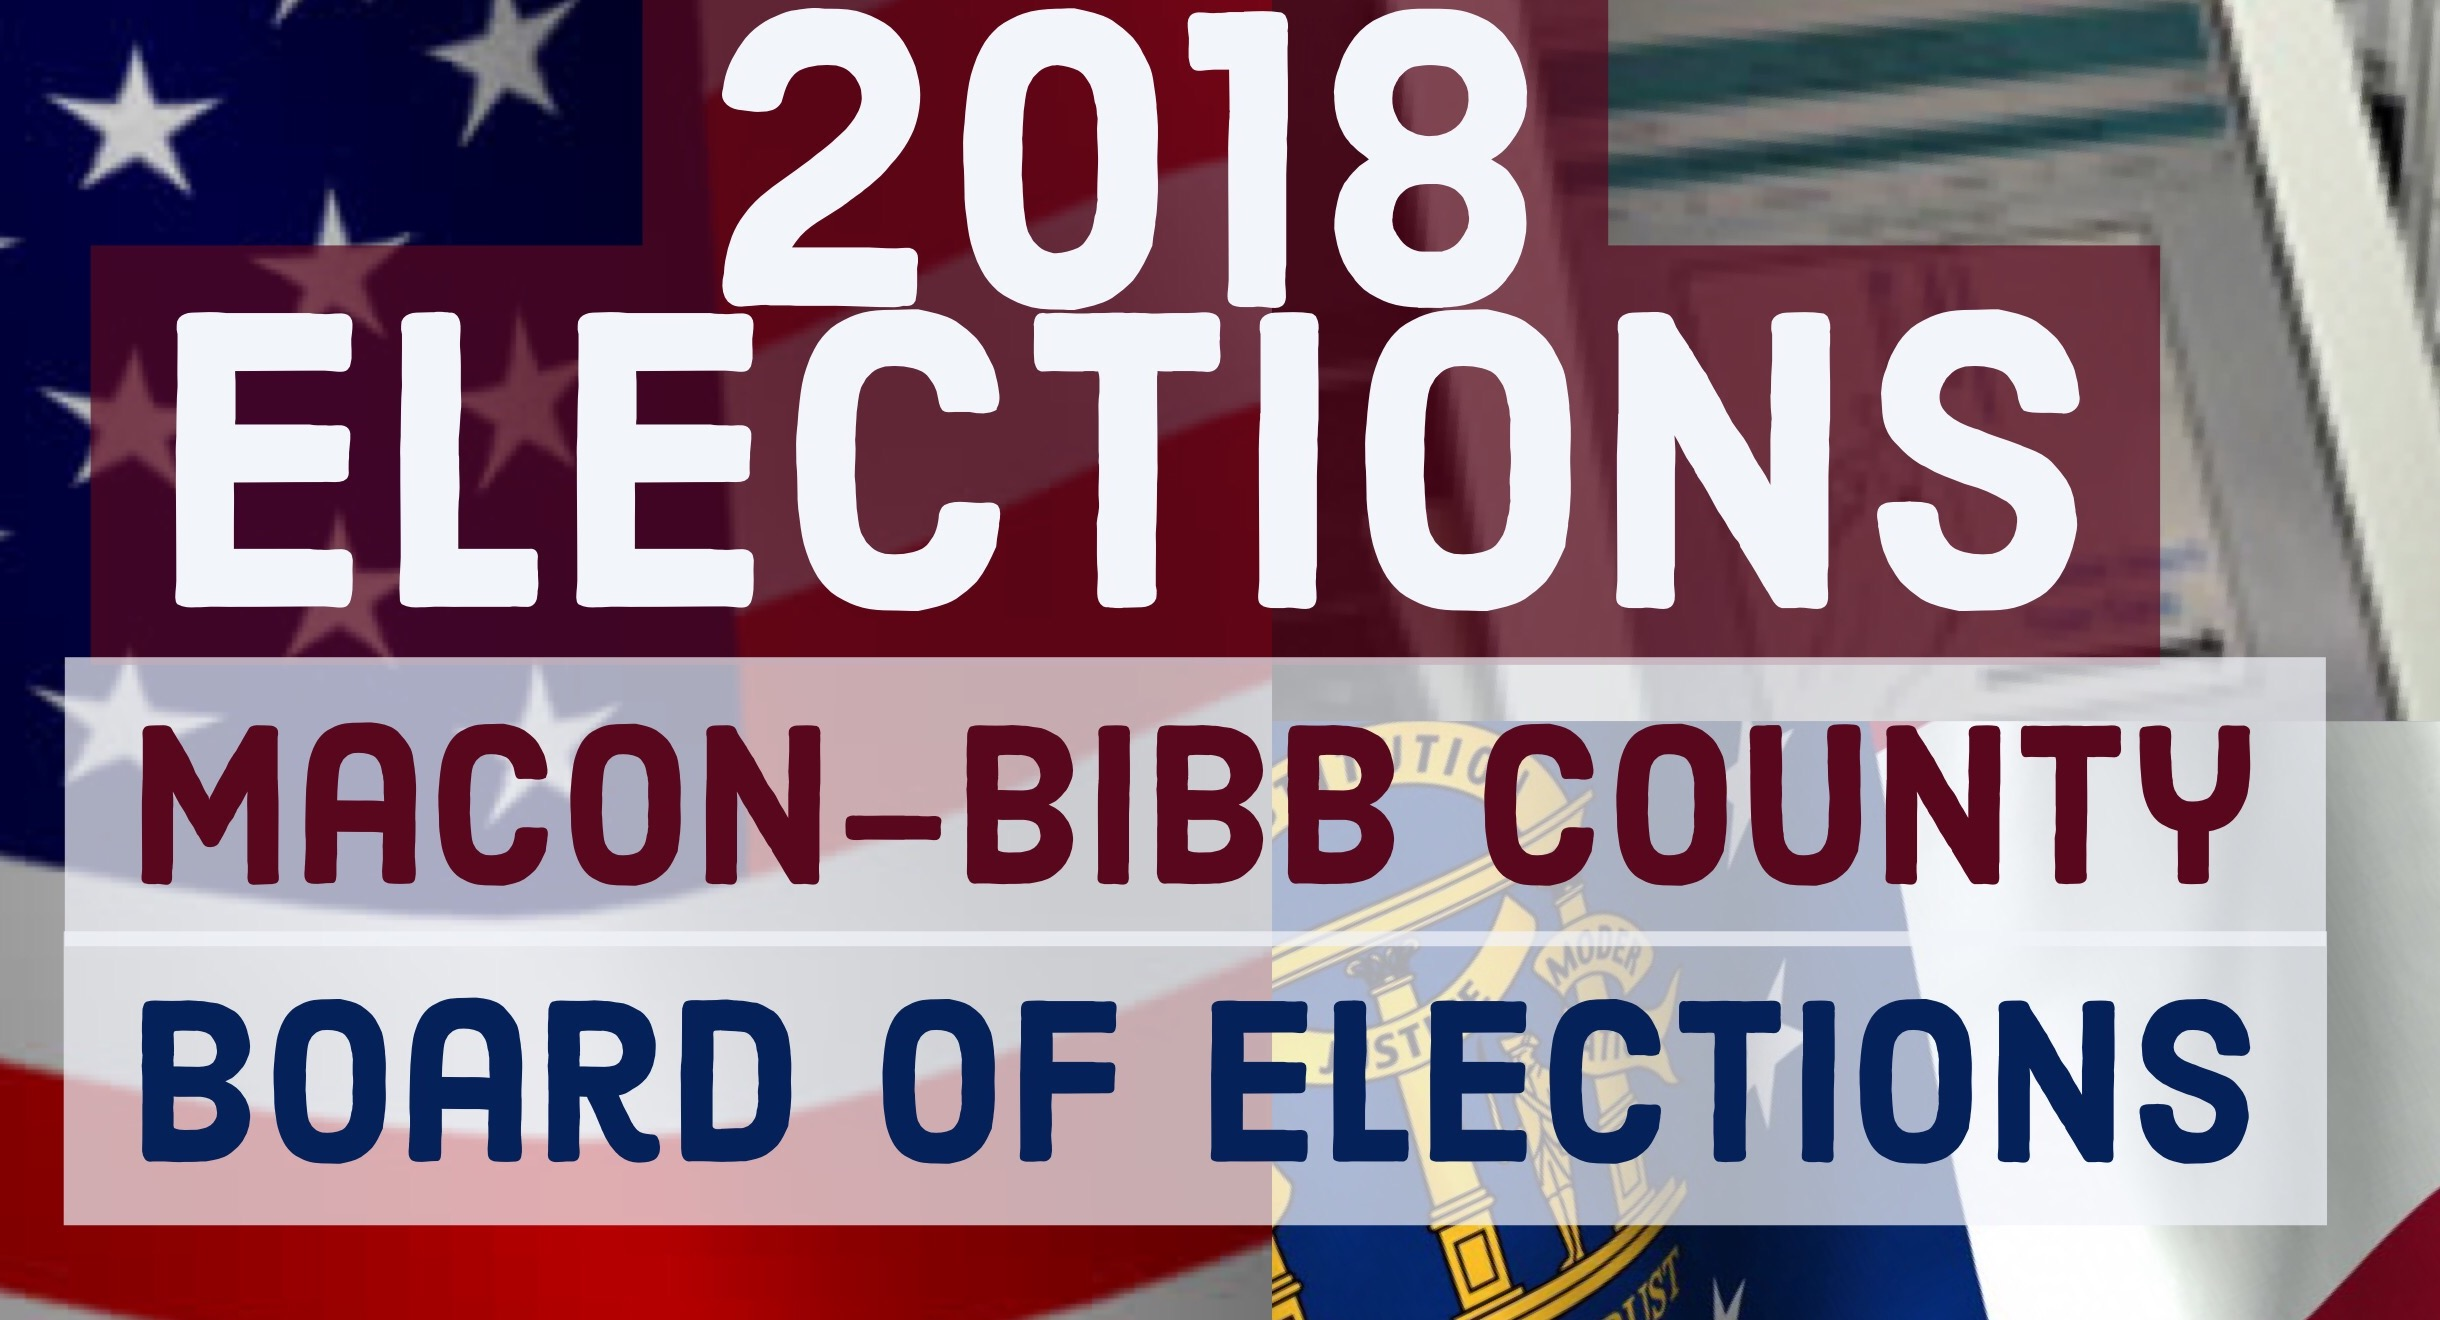 Board of Elections | Macon-Bibb County, Georgia